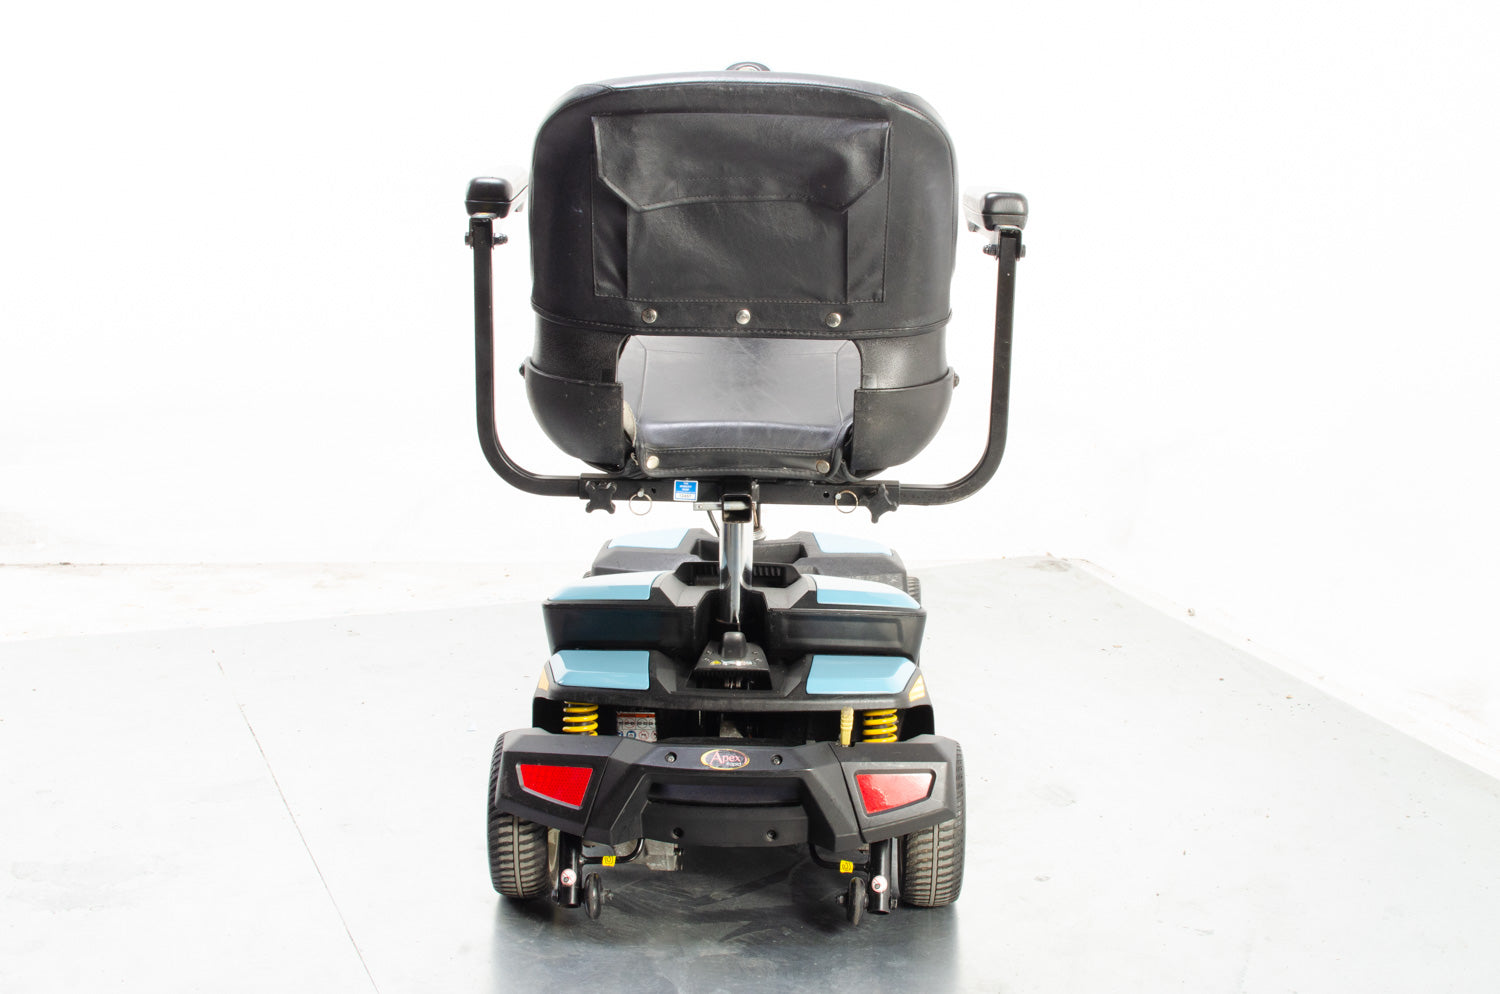 2017 Pride Apex Rapid 4mph Small Transportable Mobility Boot Scooter Baby Blue